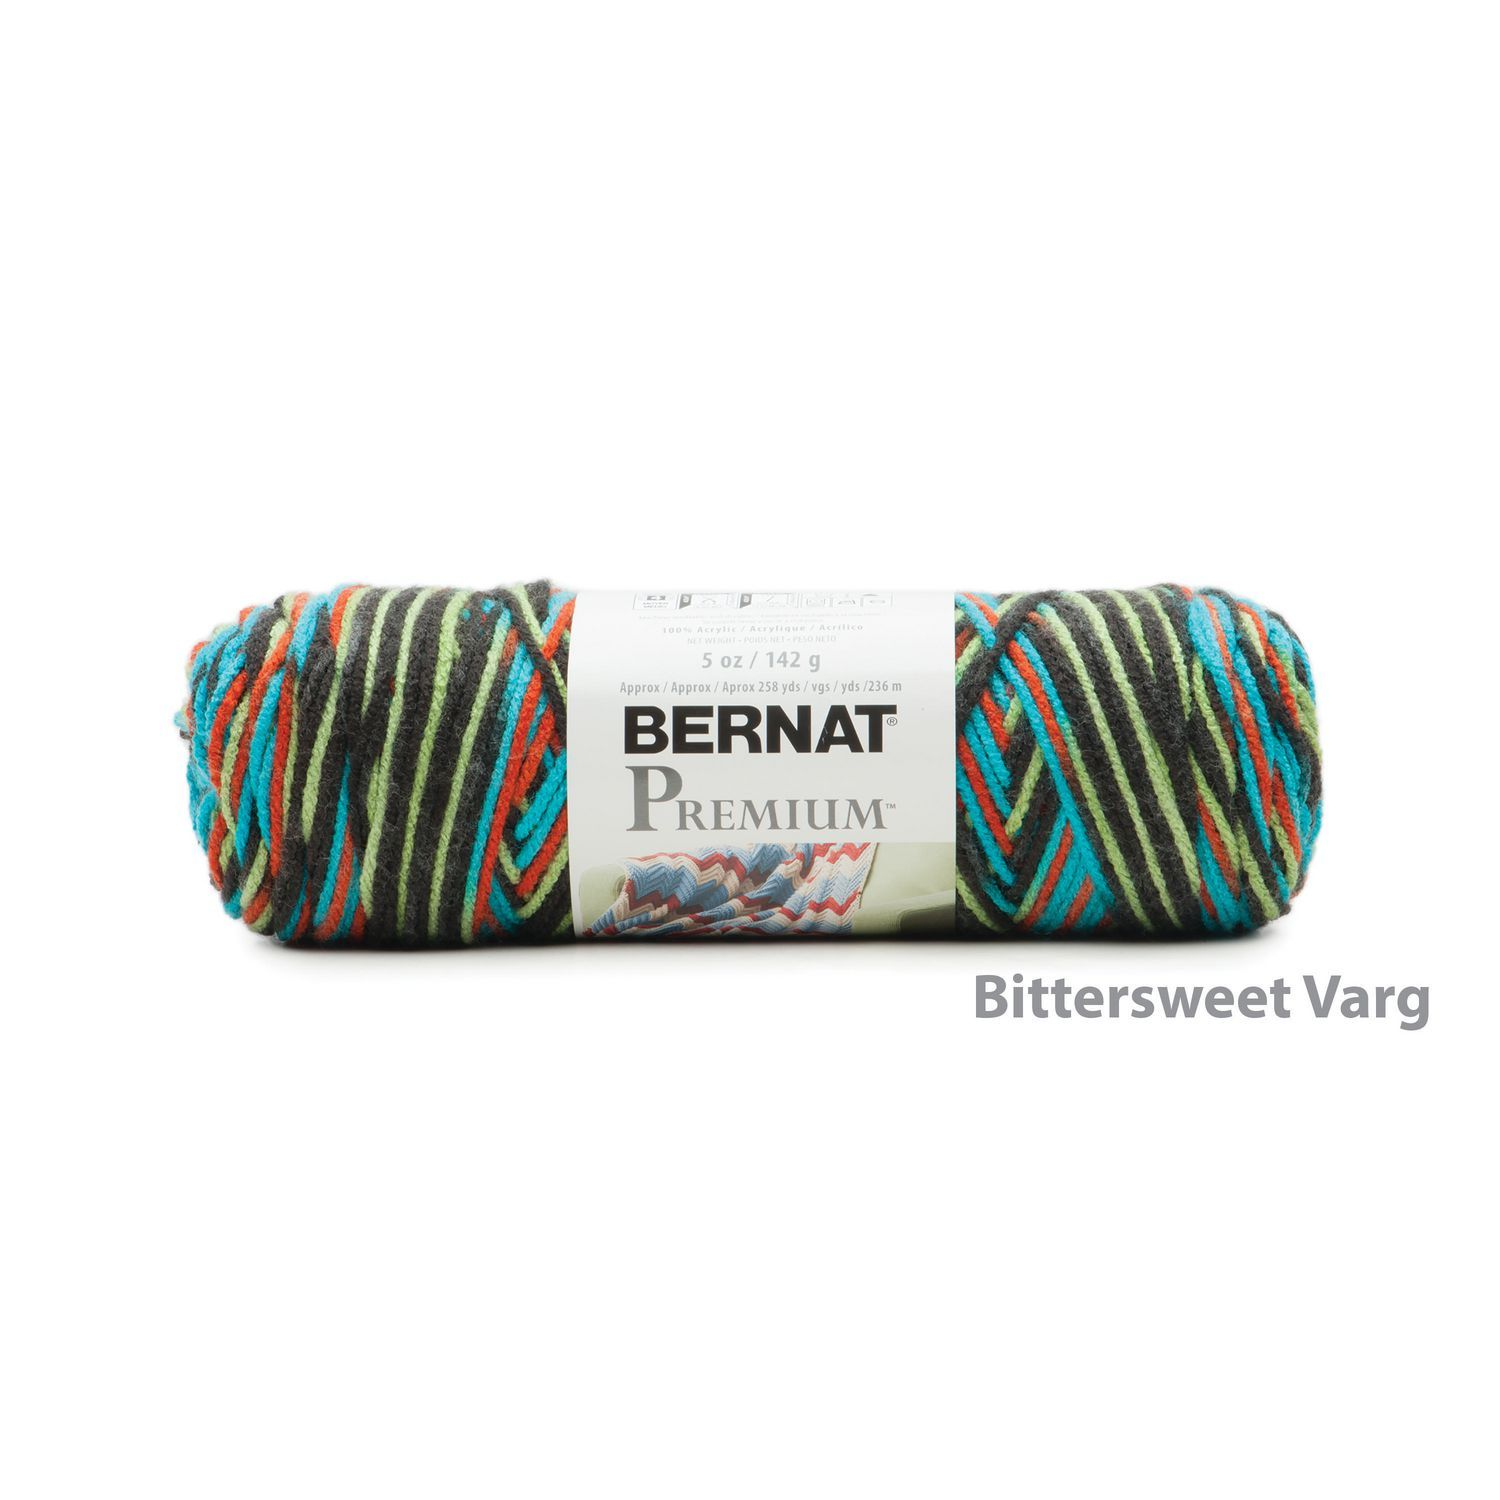 Bernat Premium Bittersweet Ive Only Found It At Walmartcom So